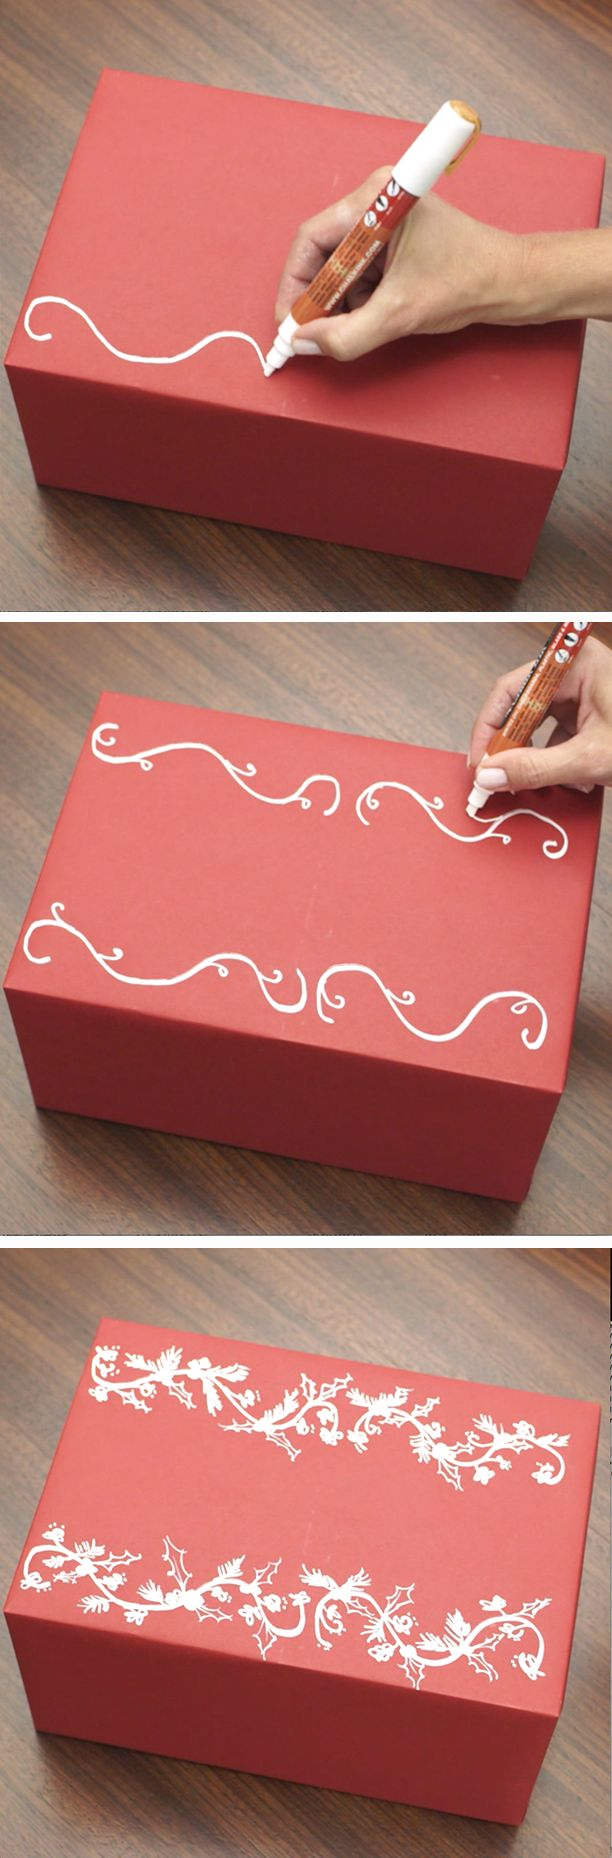 Explore your inner artist with our Chalk Markers! They're perfect for personalizing your presents!